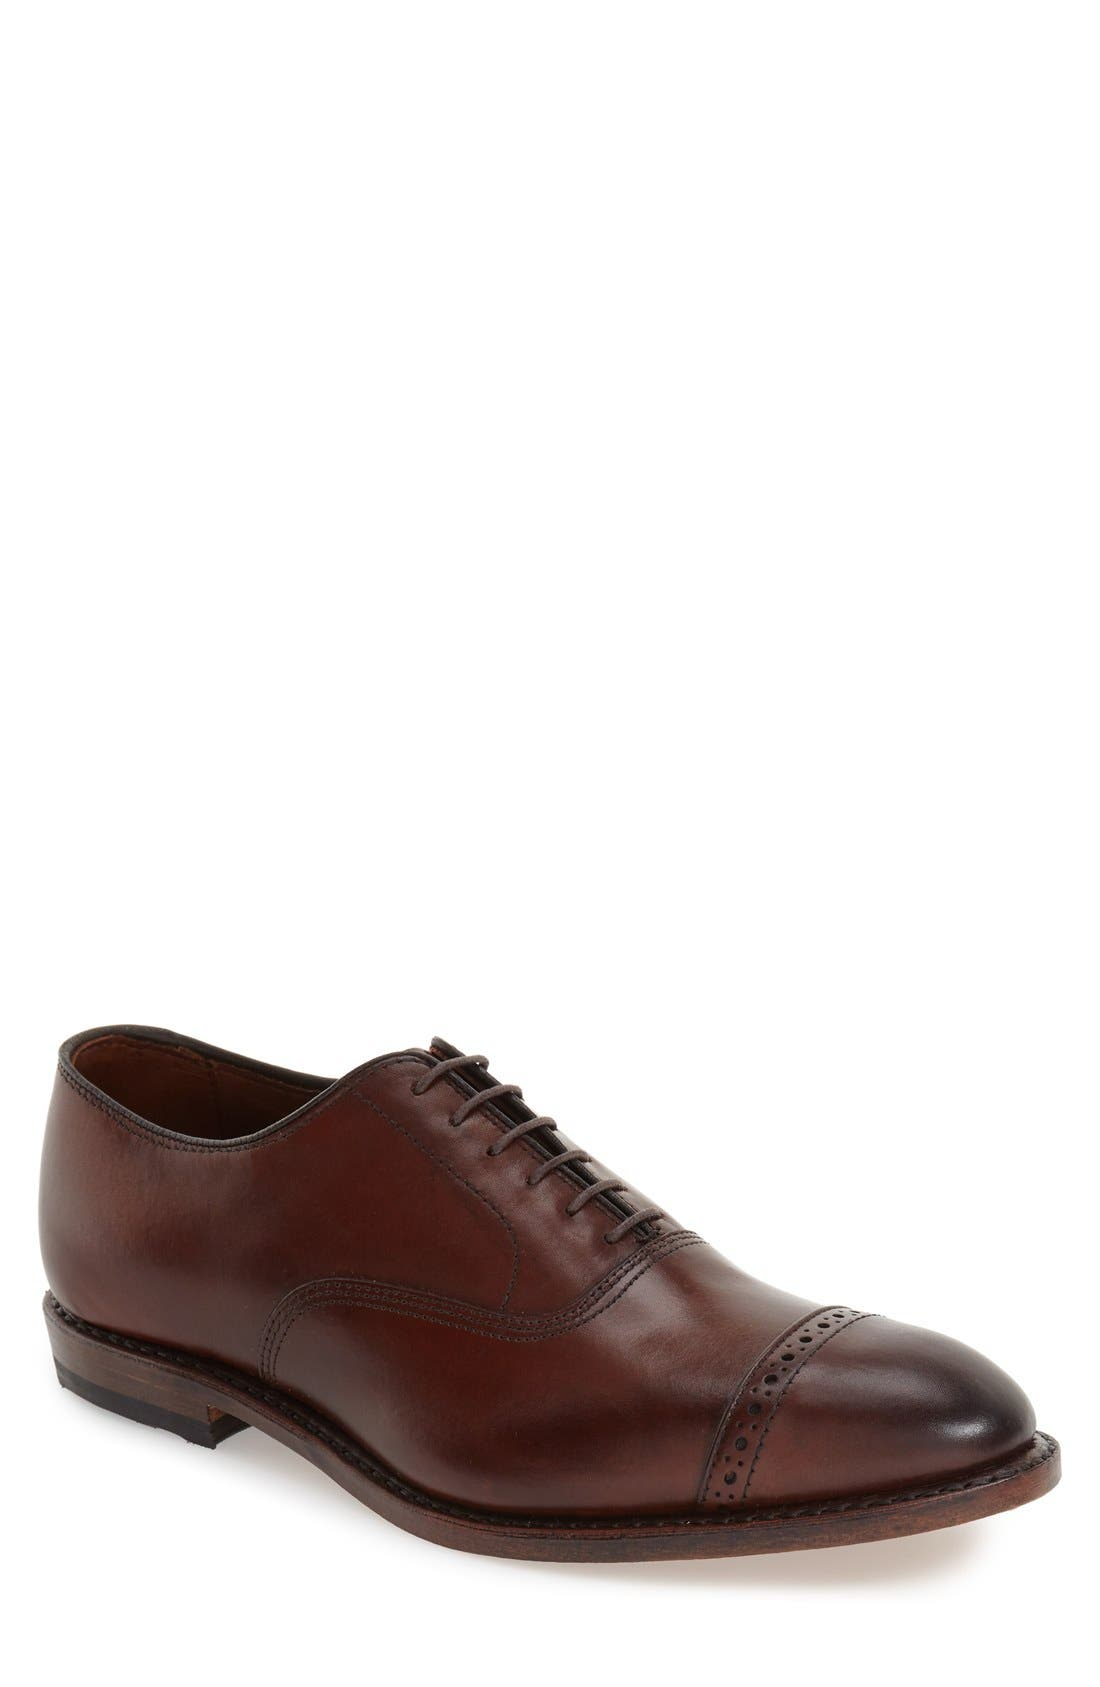 ALLEN EDMONDS 'Fifth Avenue' Cap Toe Oxford